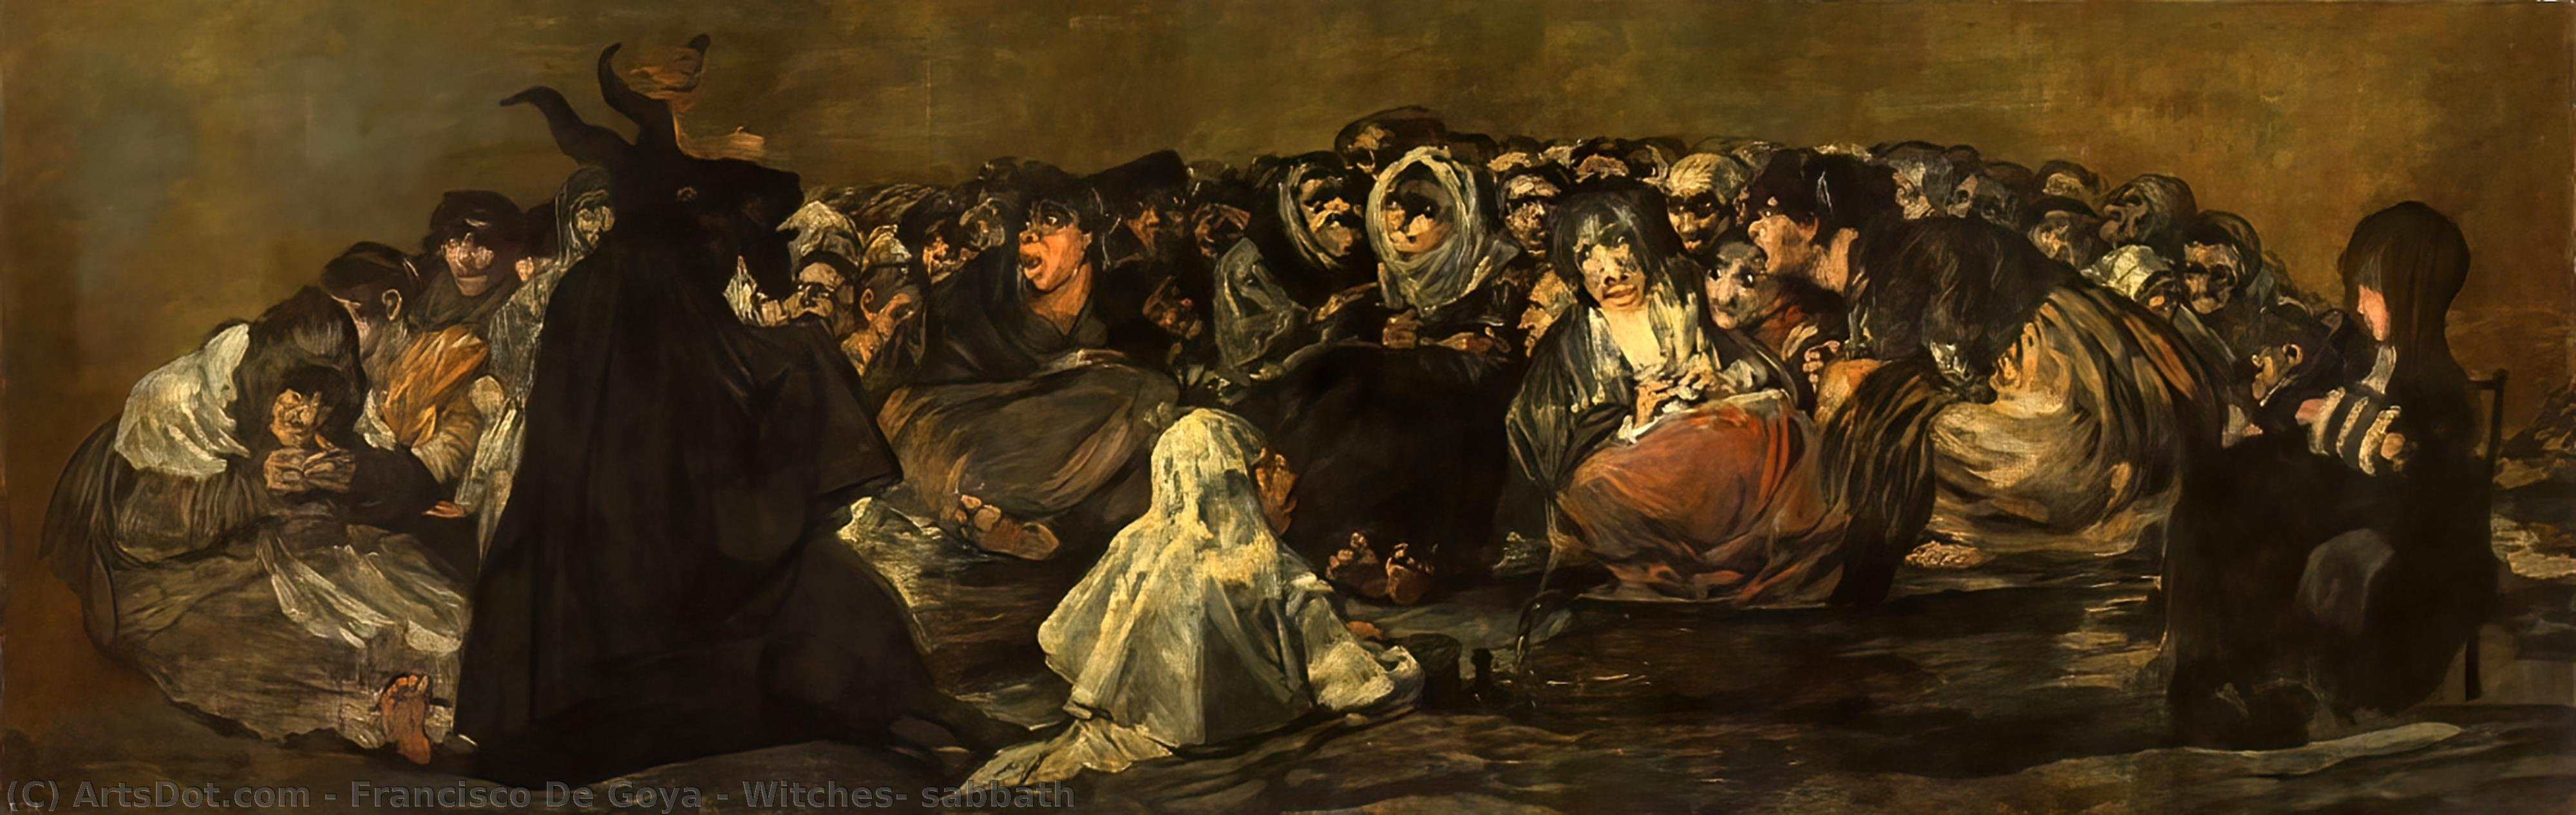 Wikioo.org - The Encyclopedia of Fine Arts - Painting, Artwork by Francisco De Goya - Witches' sabbath